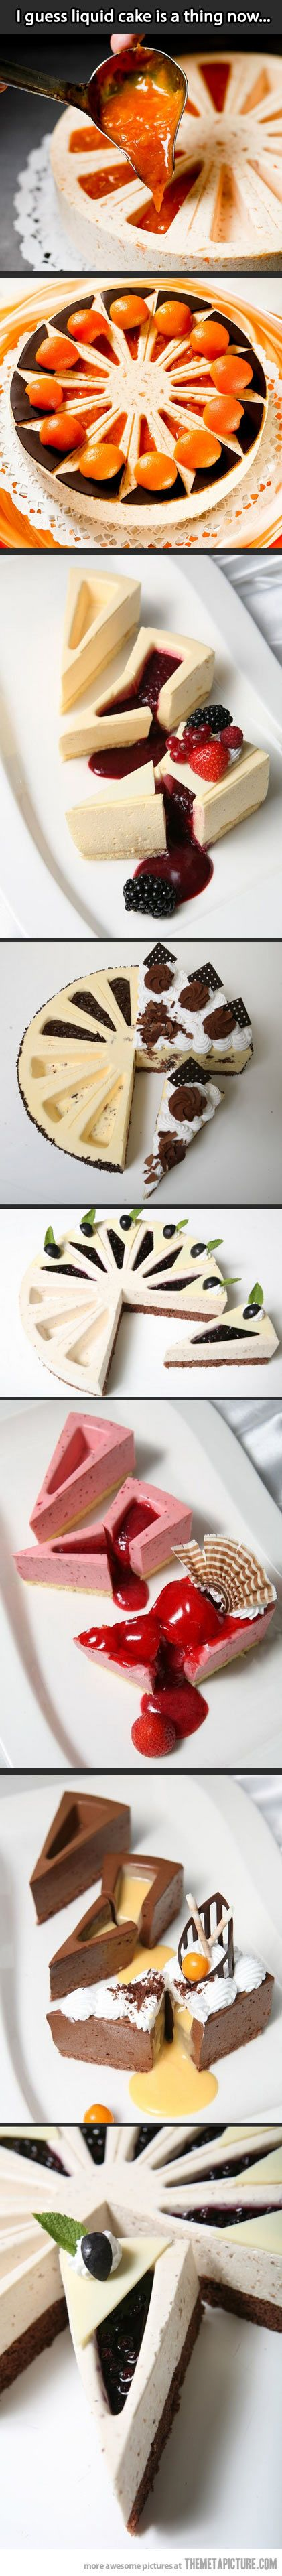 Amazing - you will never be the same after this dessert.